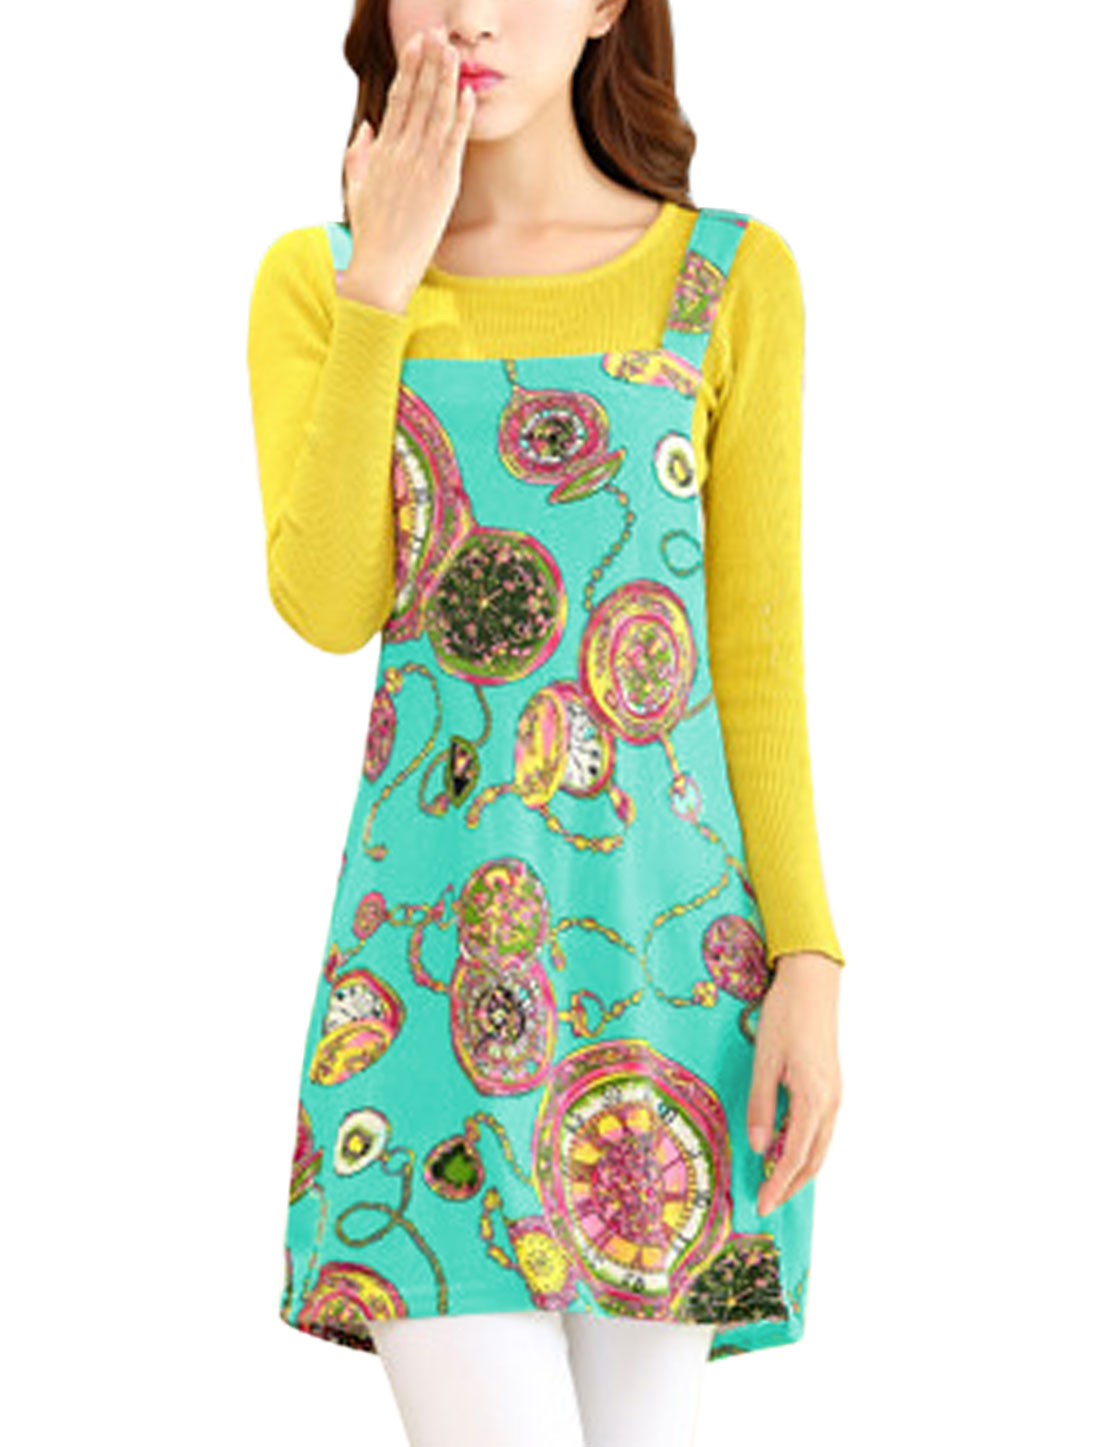 Women Pocket Watch Pattern Sleeveless Pullover Leisure Knit Suspender Dress Sea Green M